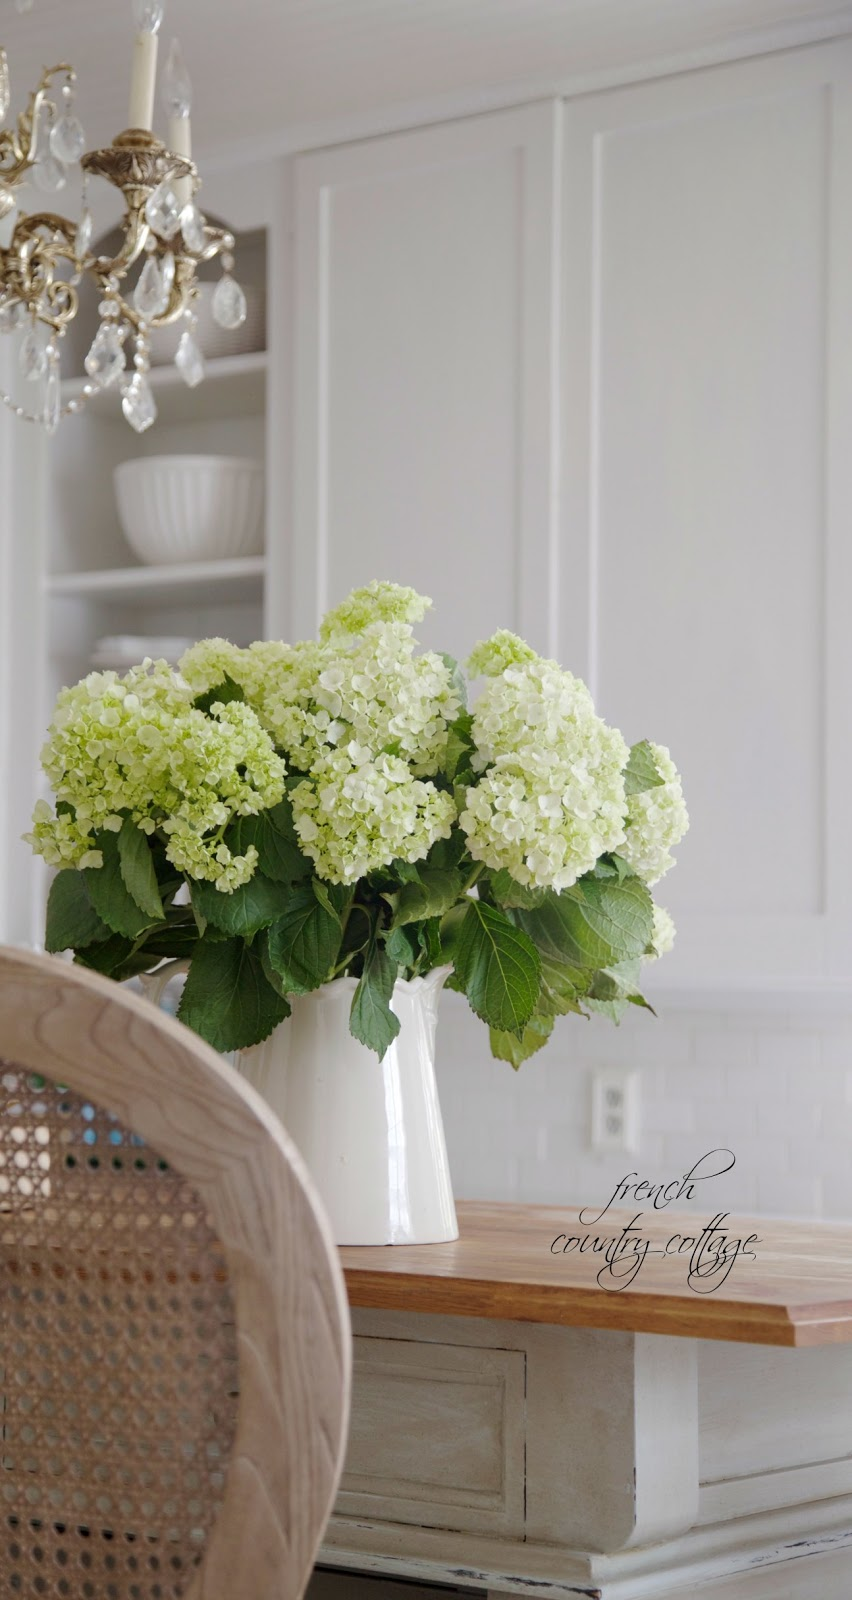 hydrangeas, fresh, kitchen, Alum